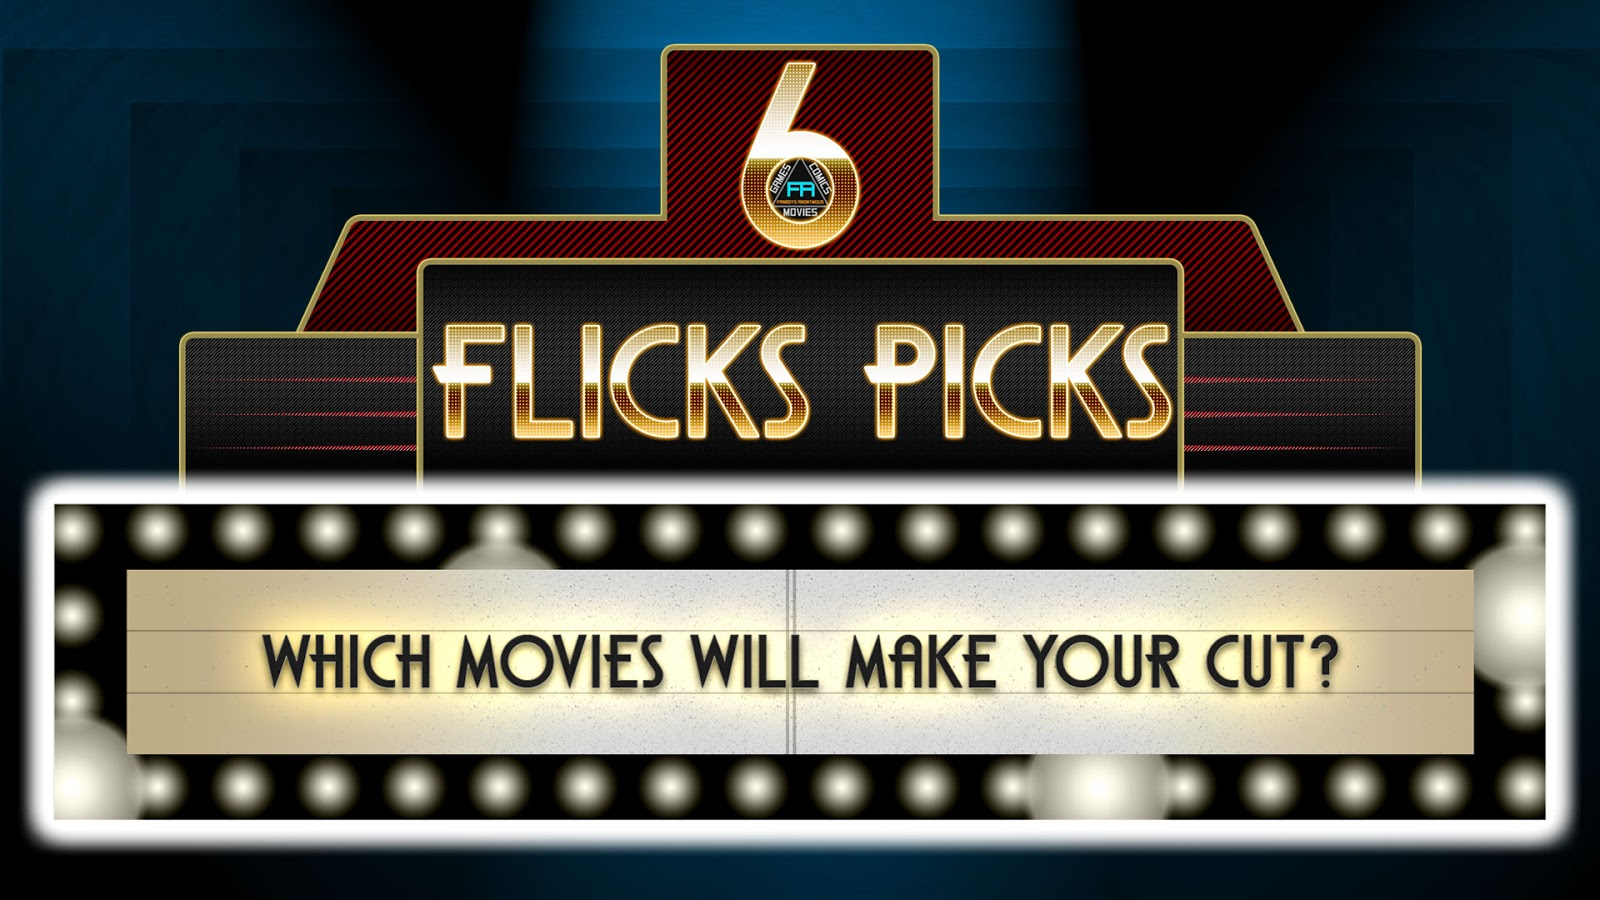 What movies are coming out May 2019 6 Flicks Picks